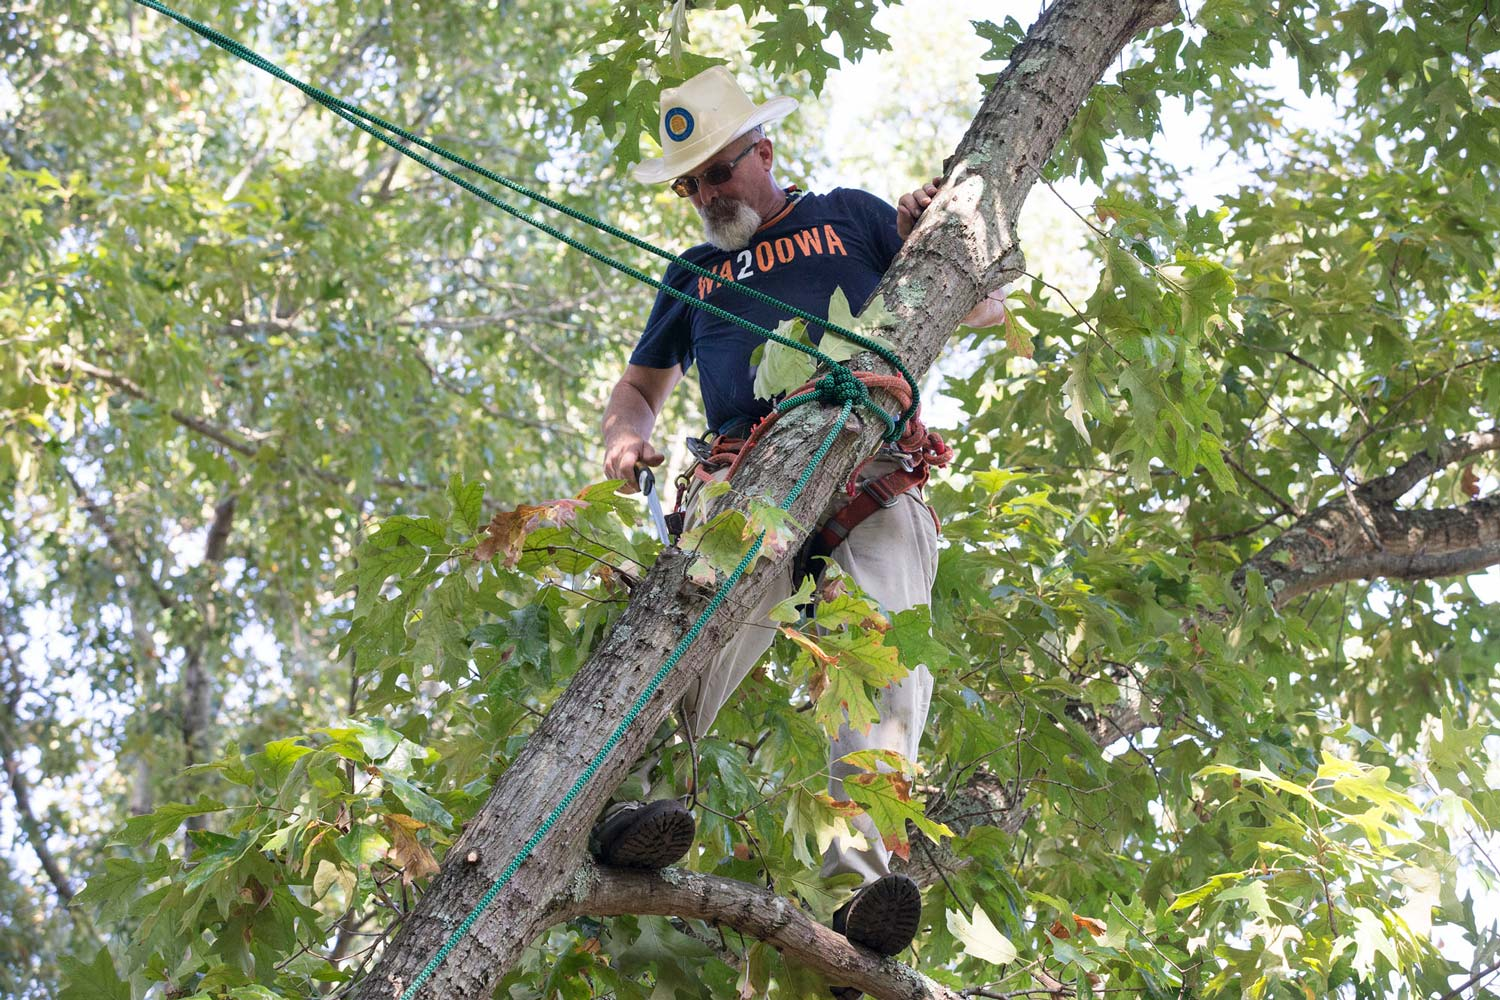 University Arborist Jerry Brown, wearing his trademark Stetson-style hardhat, trims a tree at Camp Holiday Trails as part of the annual Day of Caring.